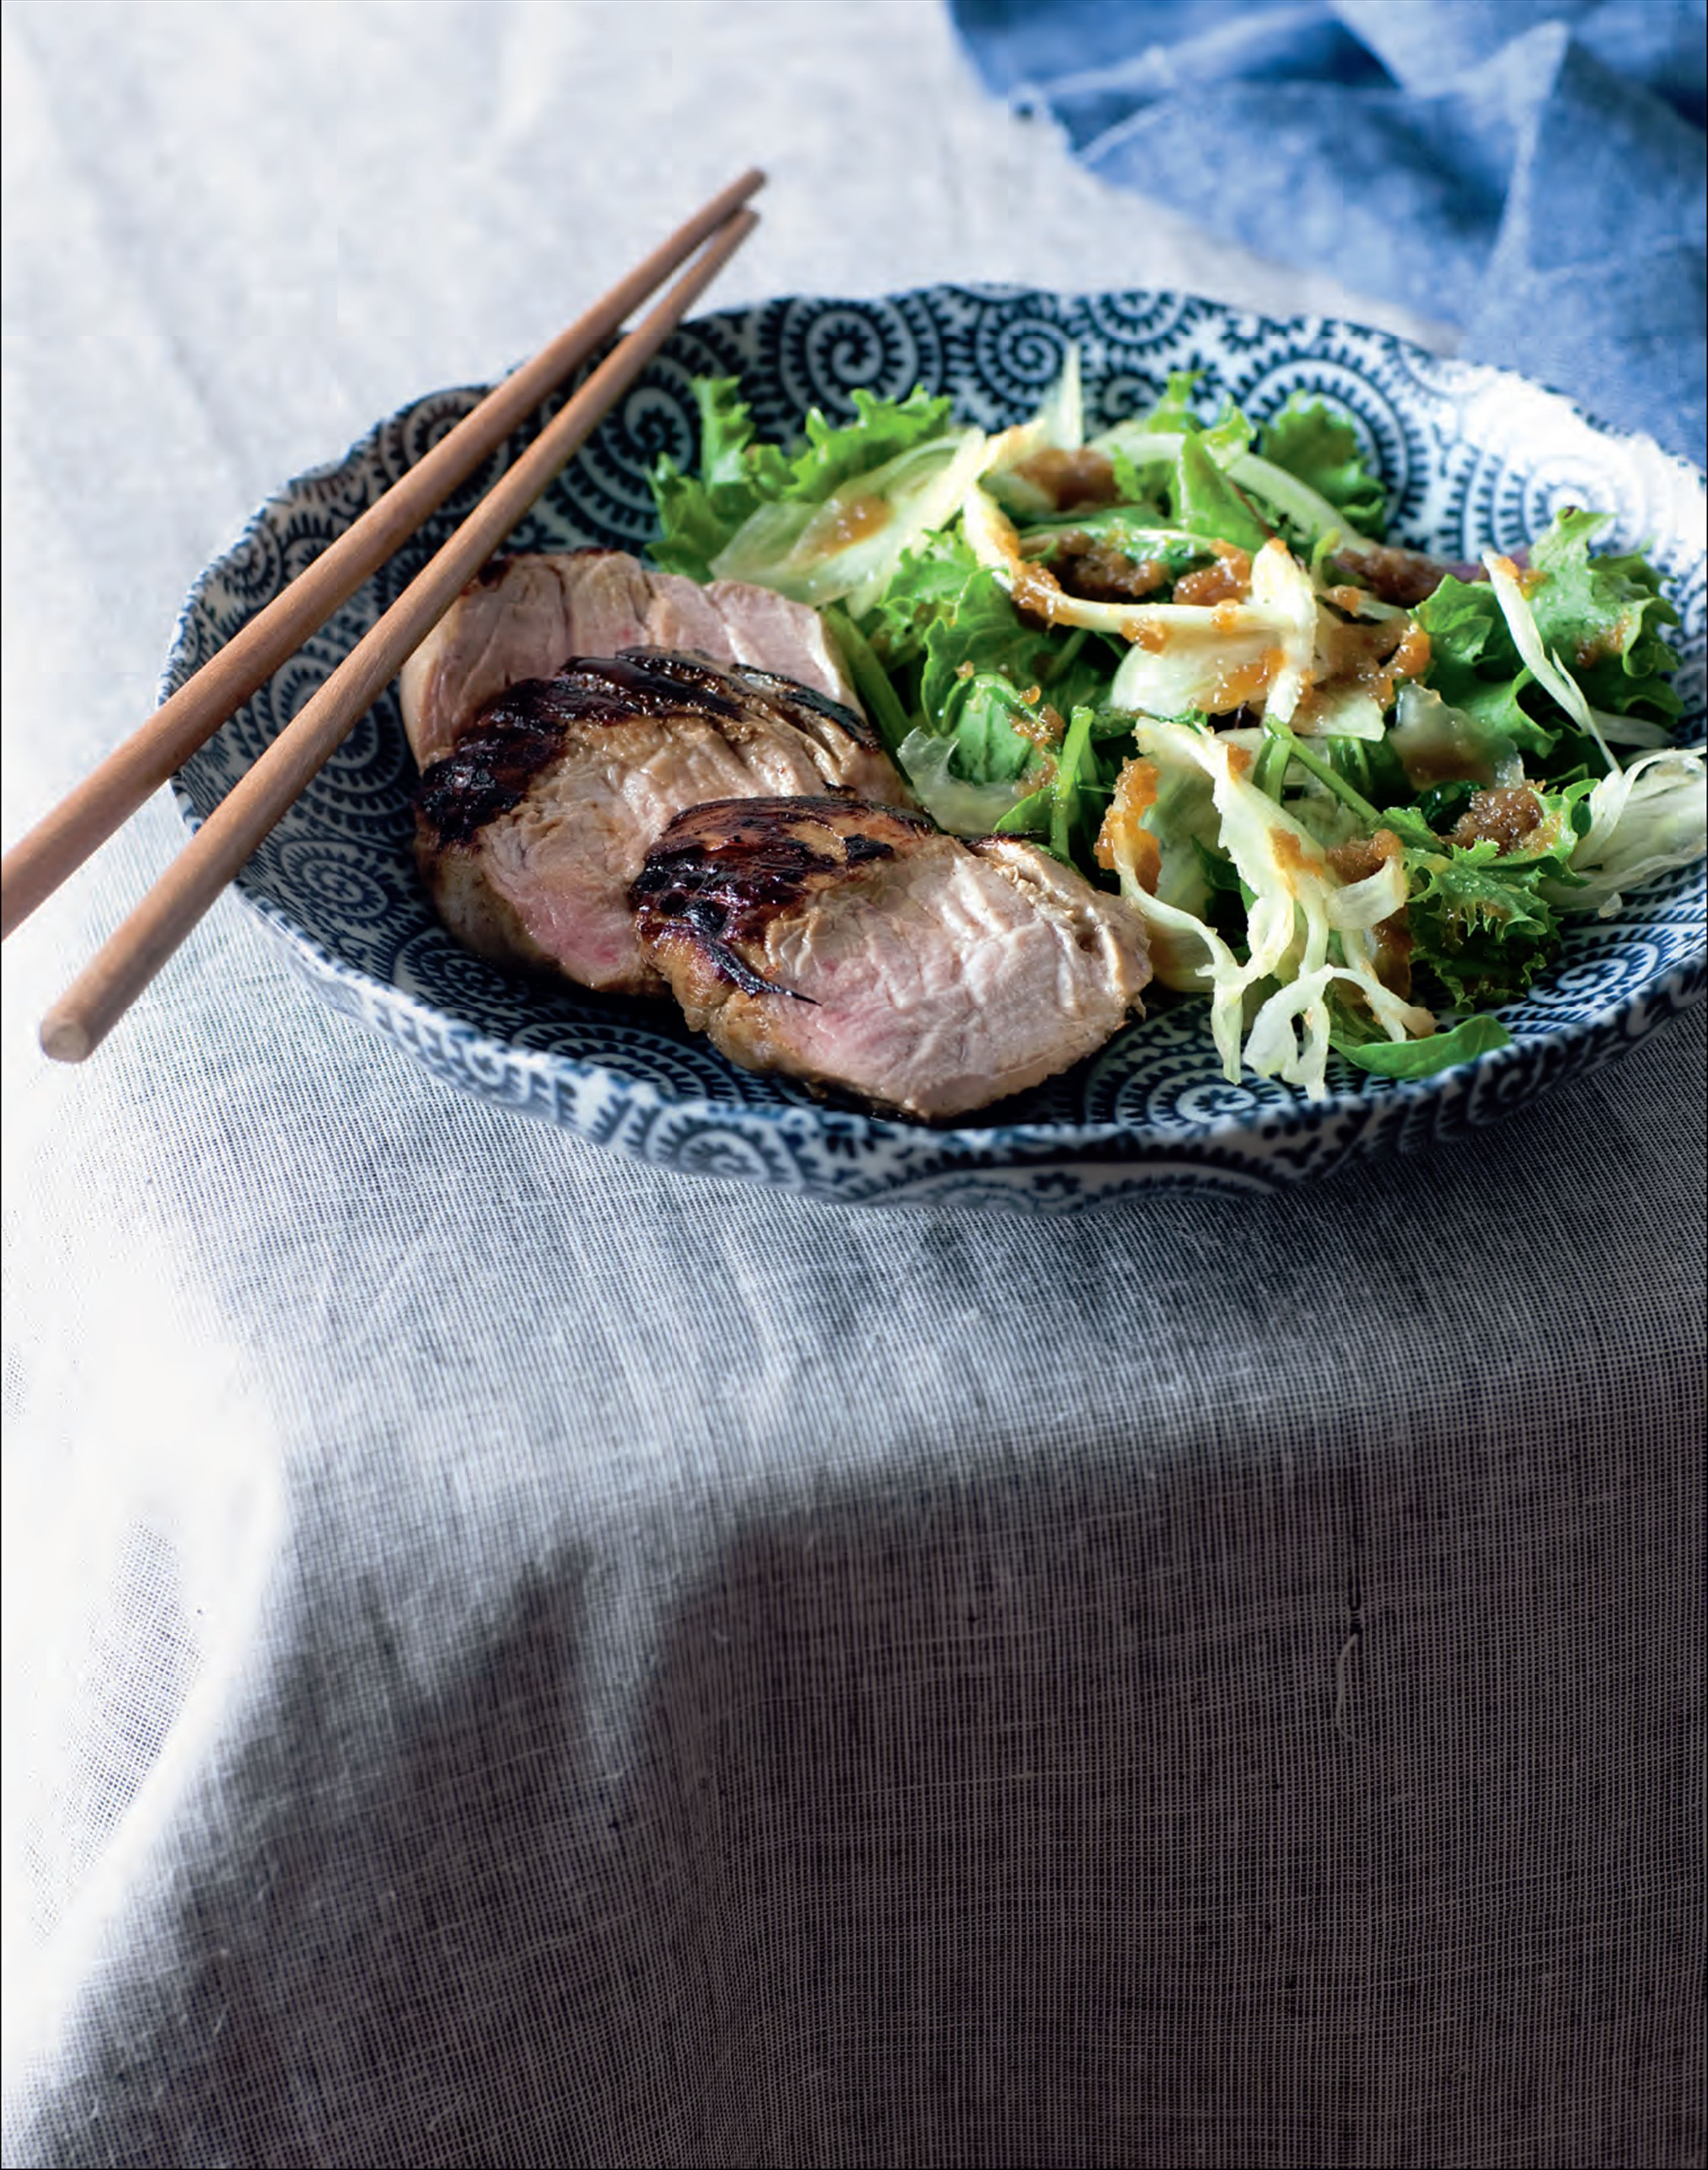 Japanese pork with onion dressing